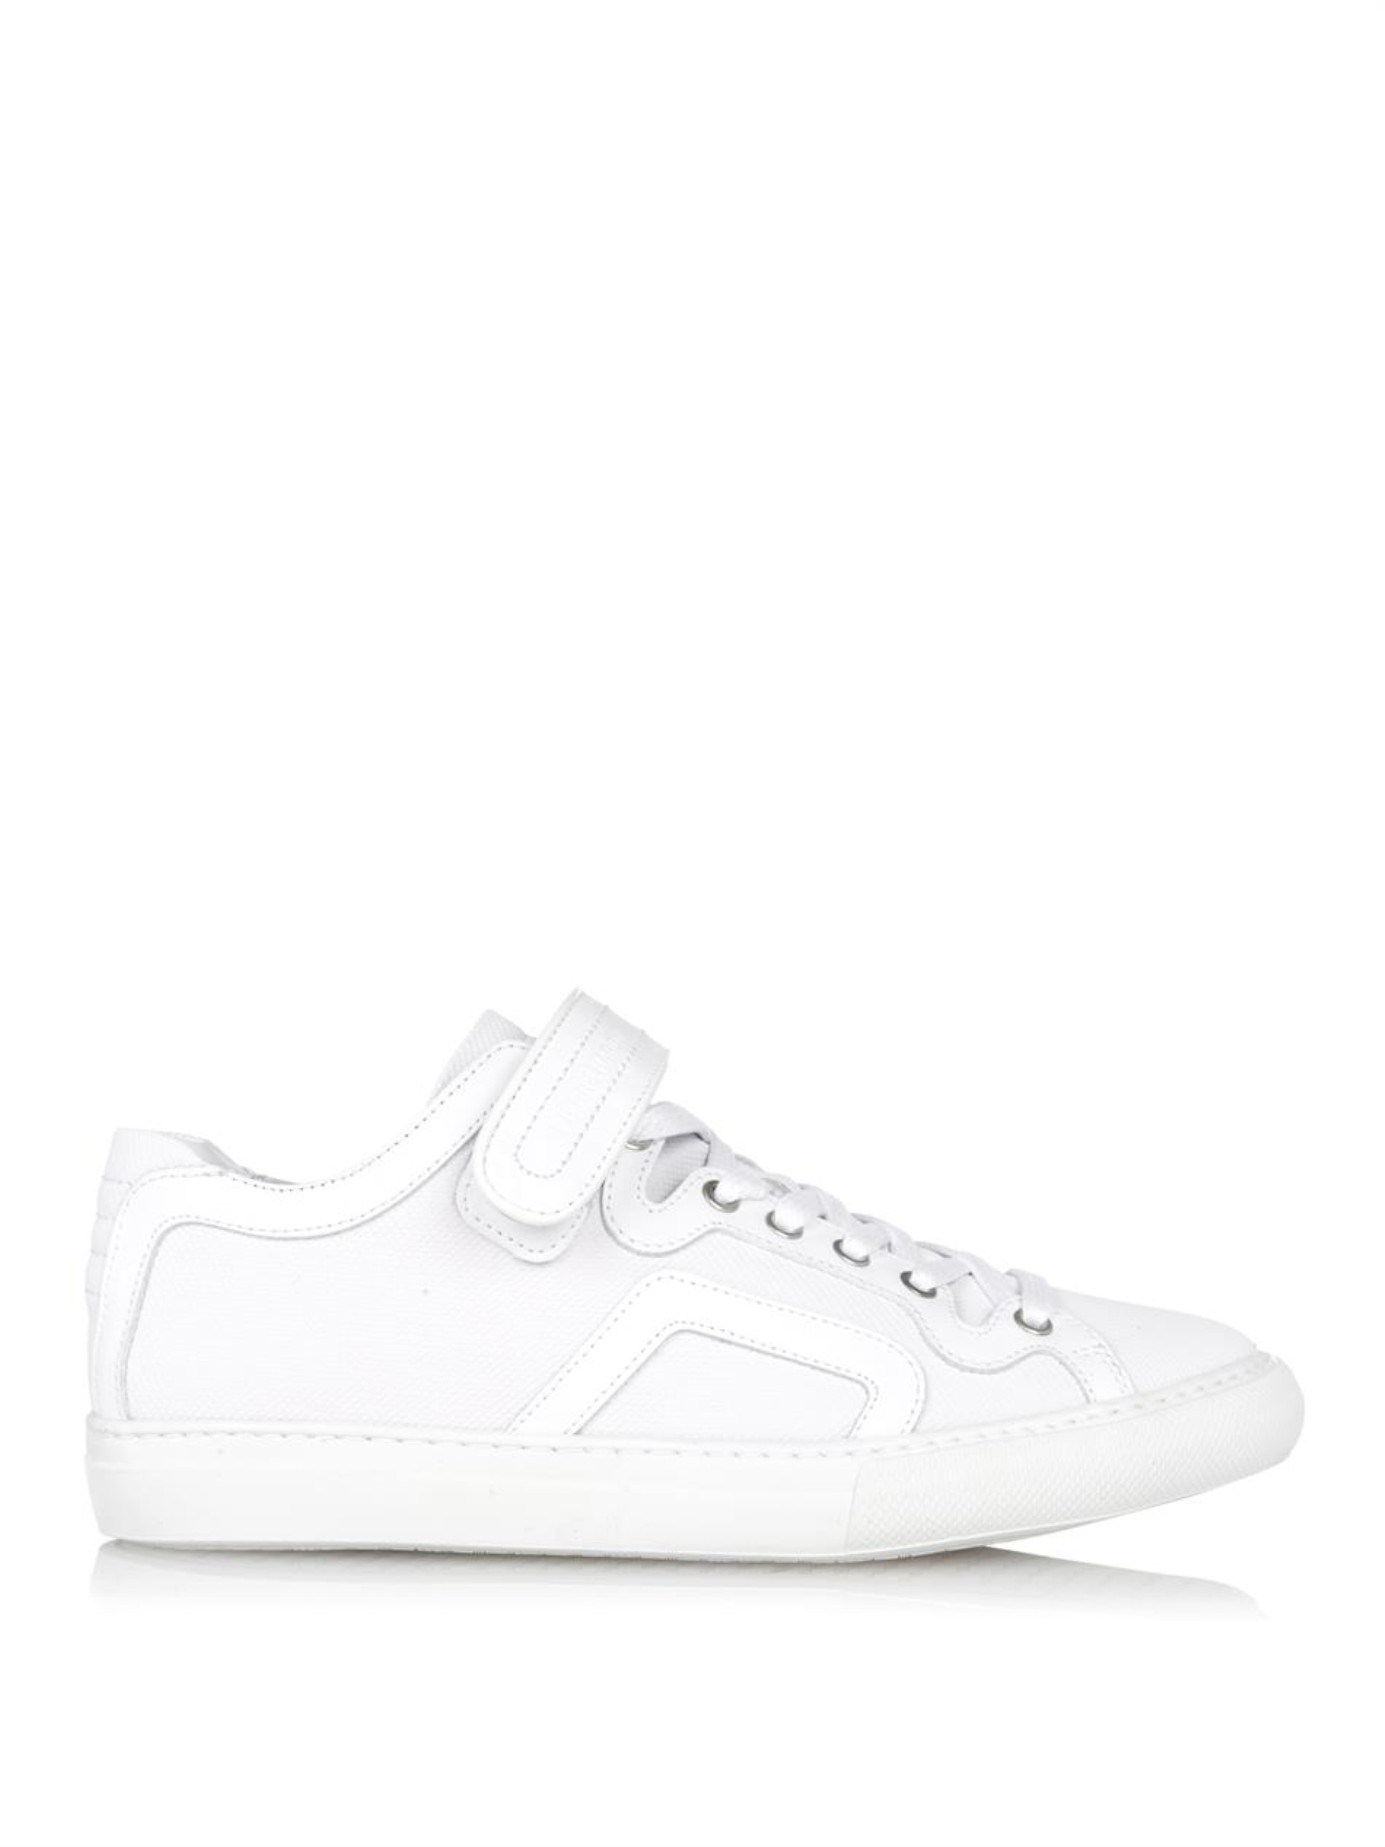 White Strap Sneakers Pierre Hardy